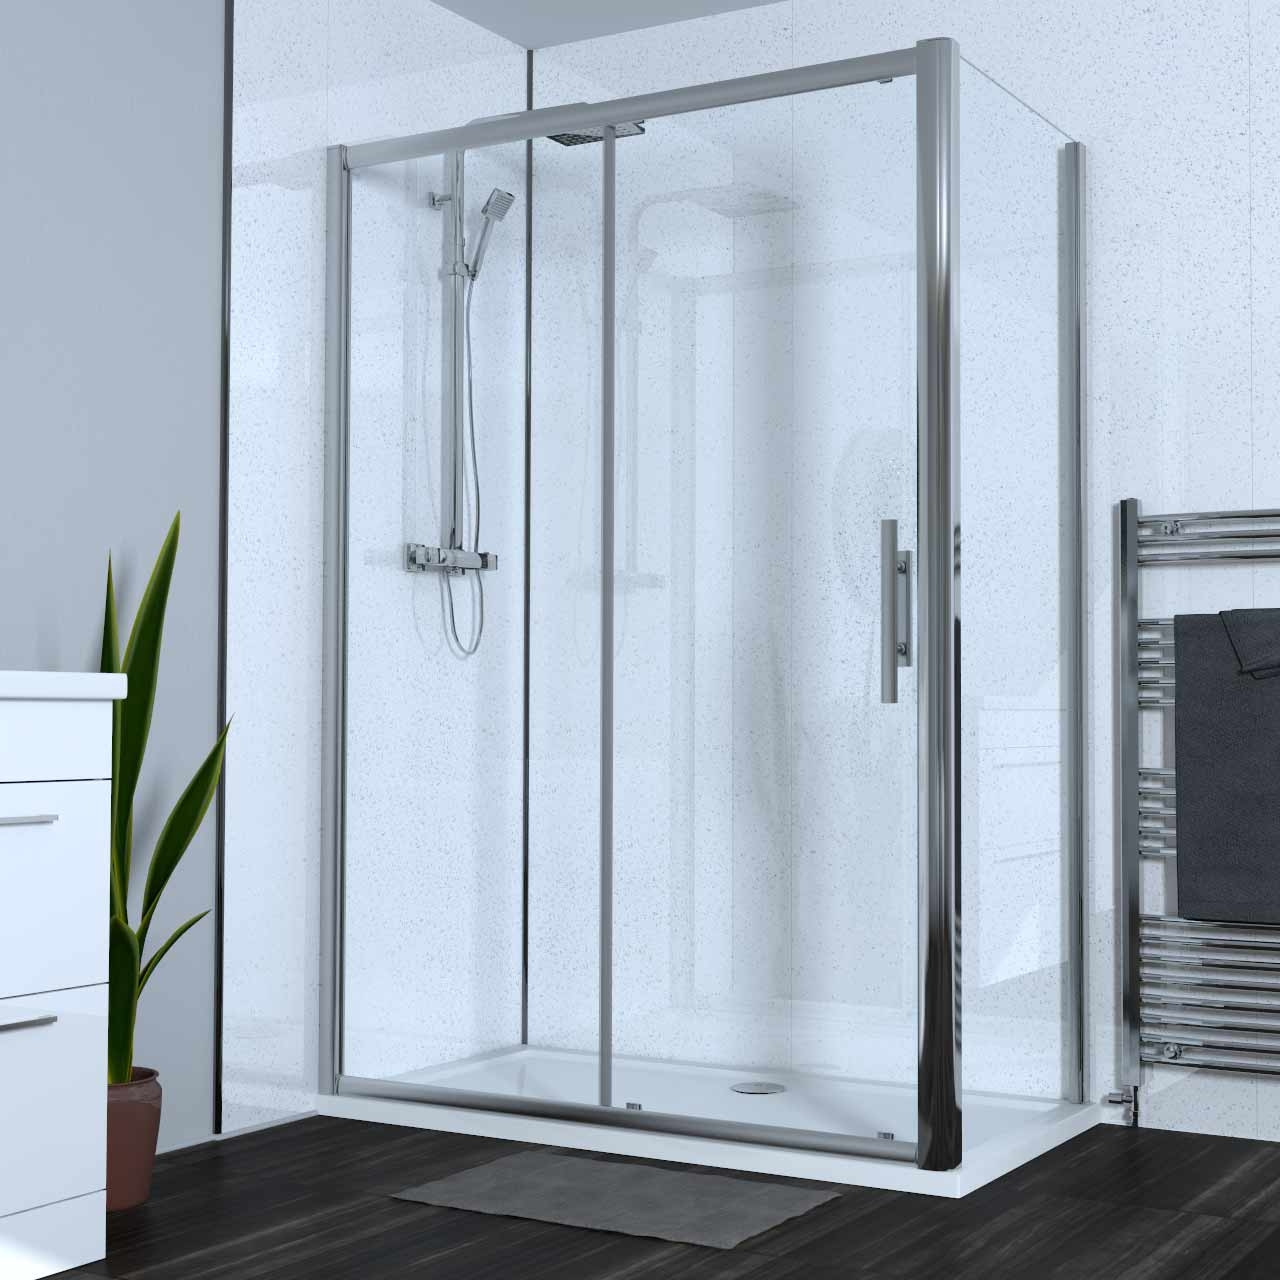 Series 8 Plus 1400mm x 760mm Sliding Door Shower Enclosure